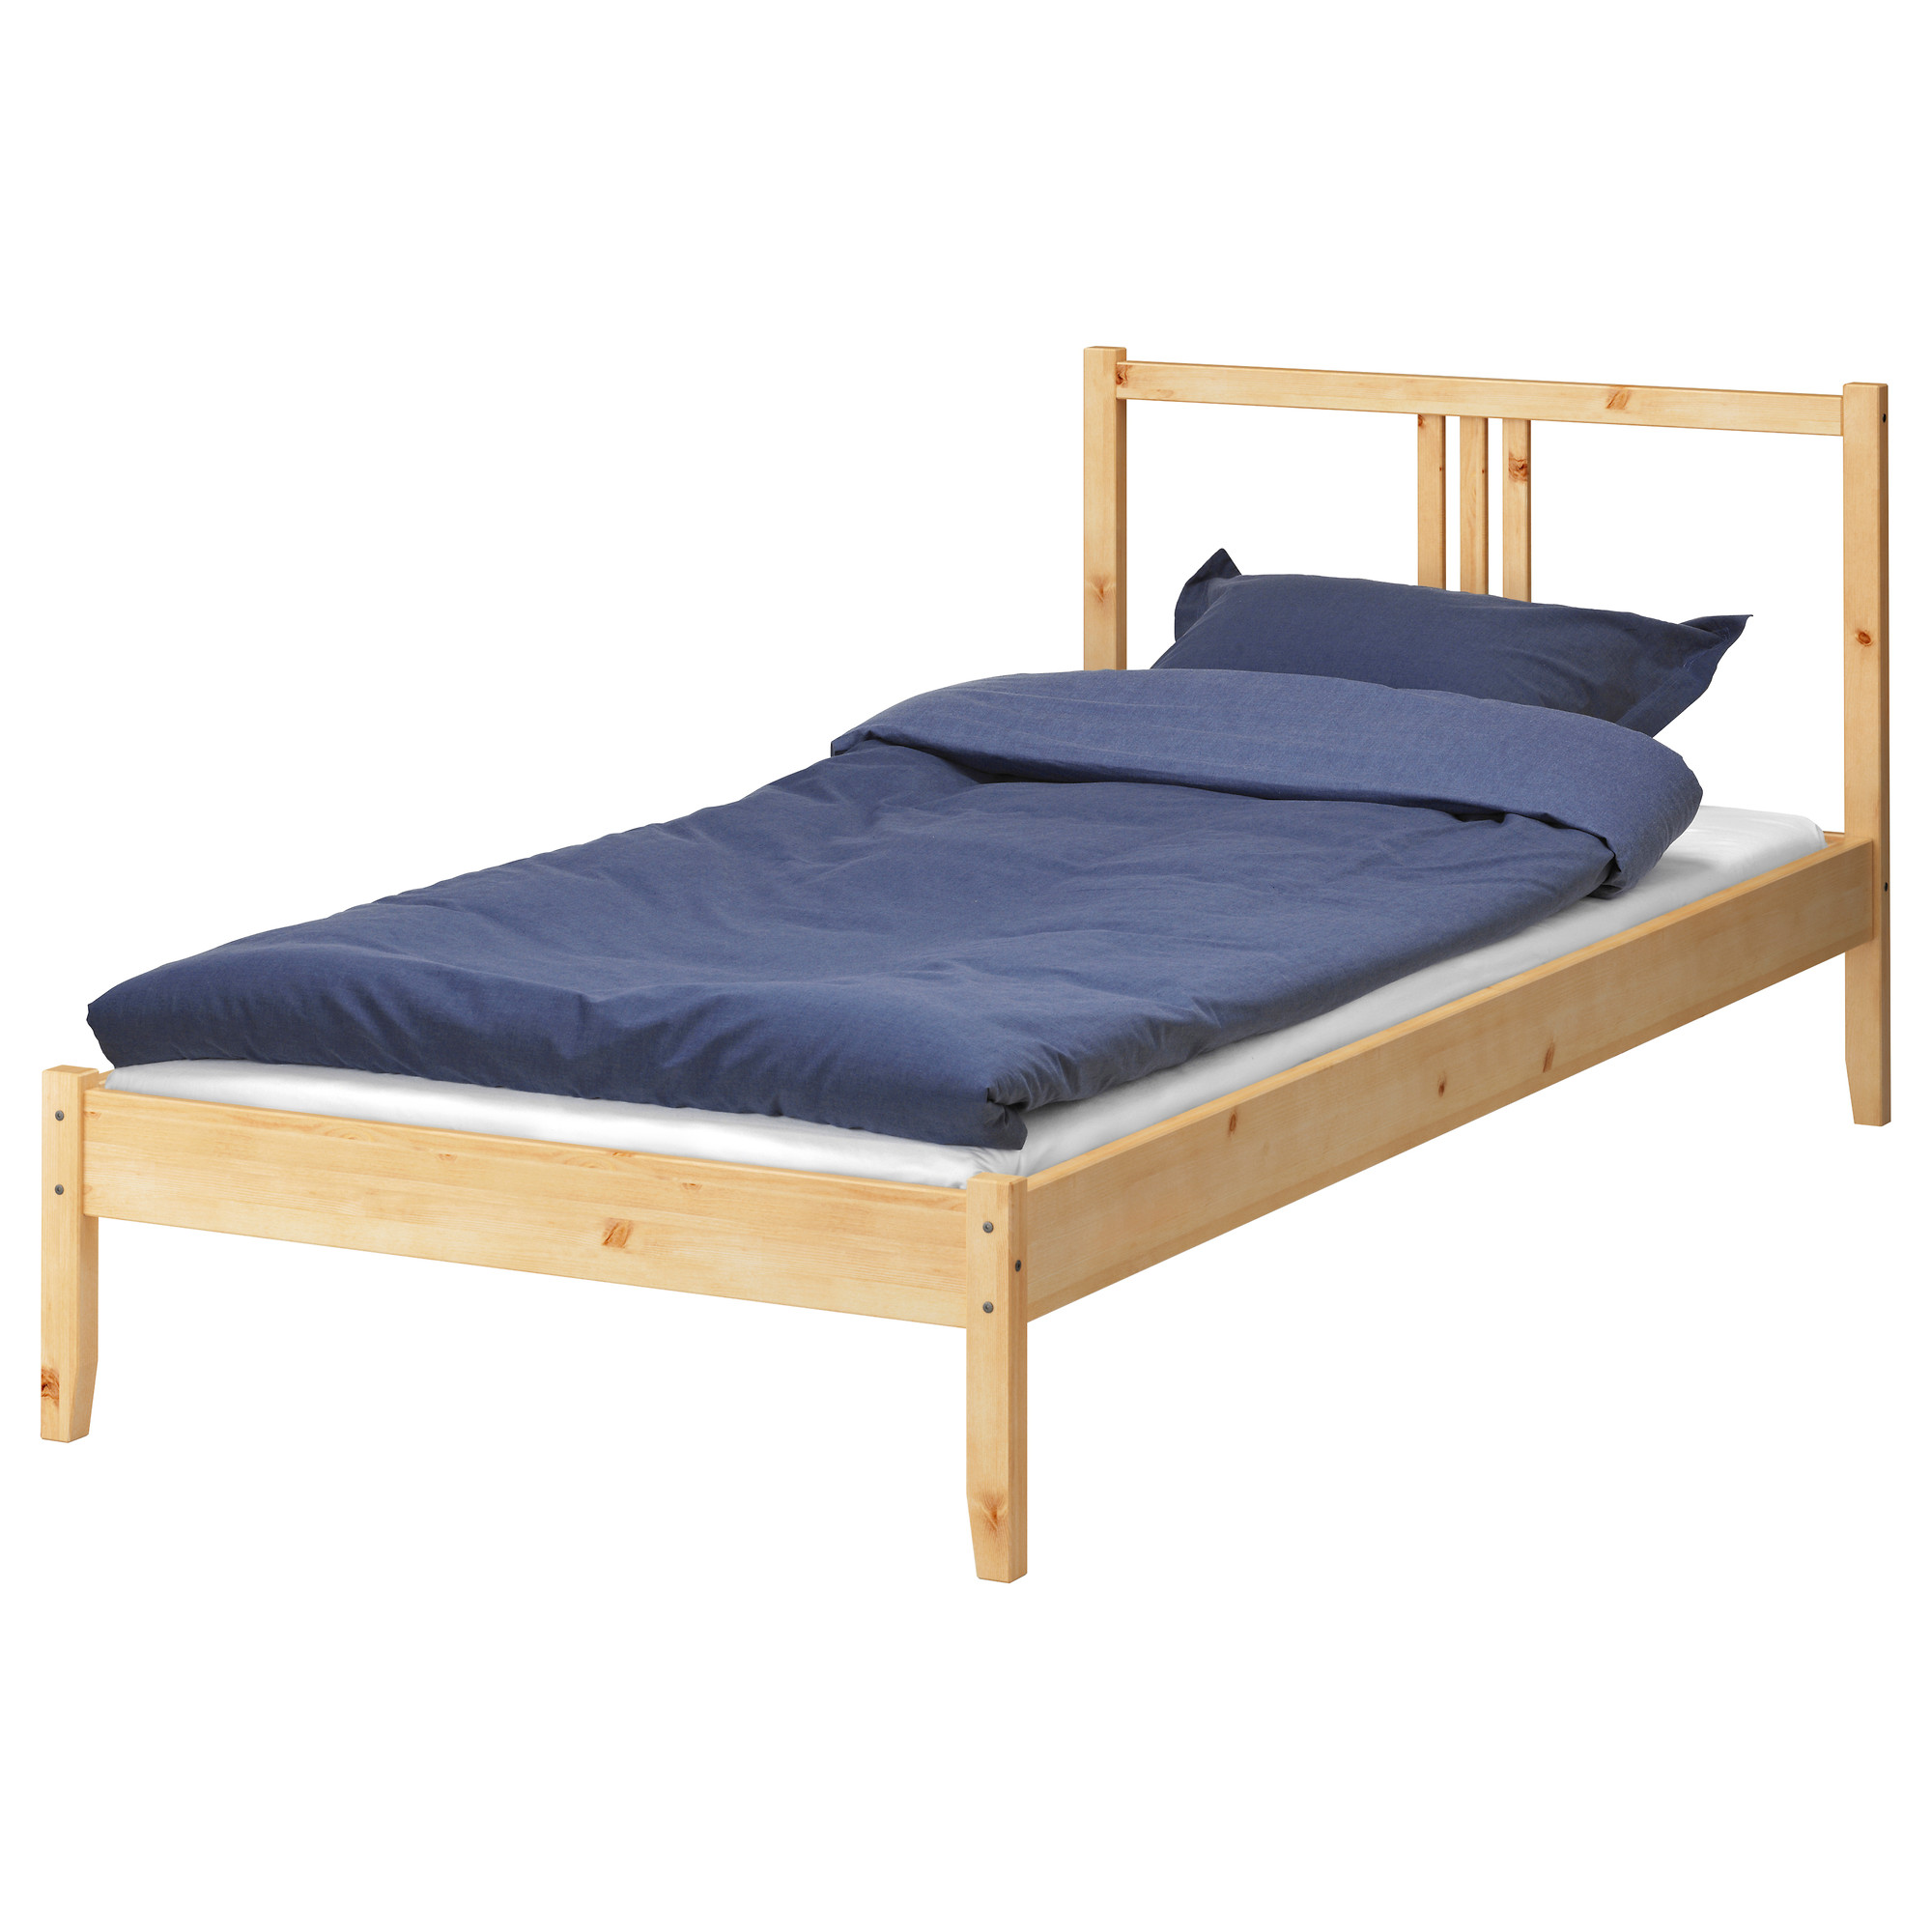 Shanghai IKEA IKEA premium wooden frame 90cm ozon wide and 2 meters long bedroom bed domestic purchasing